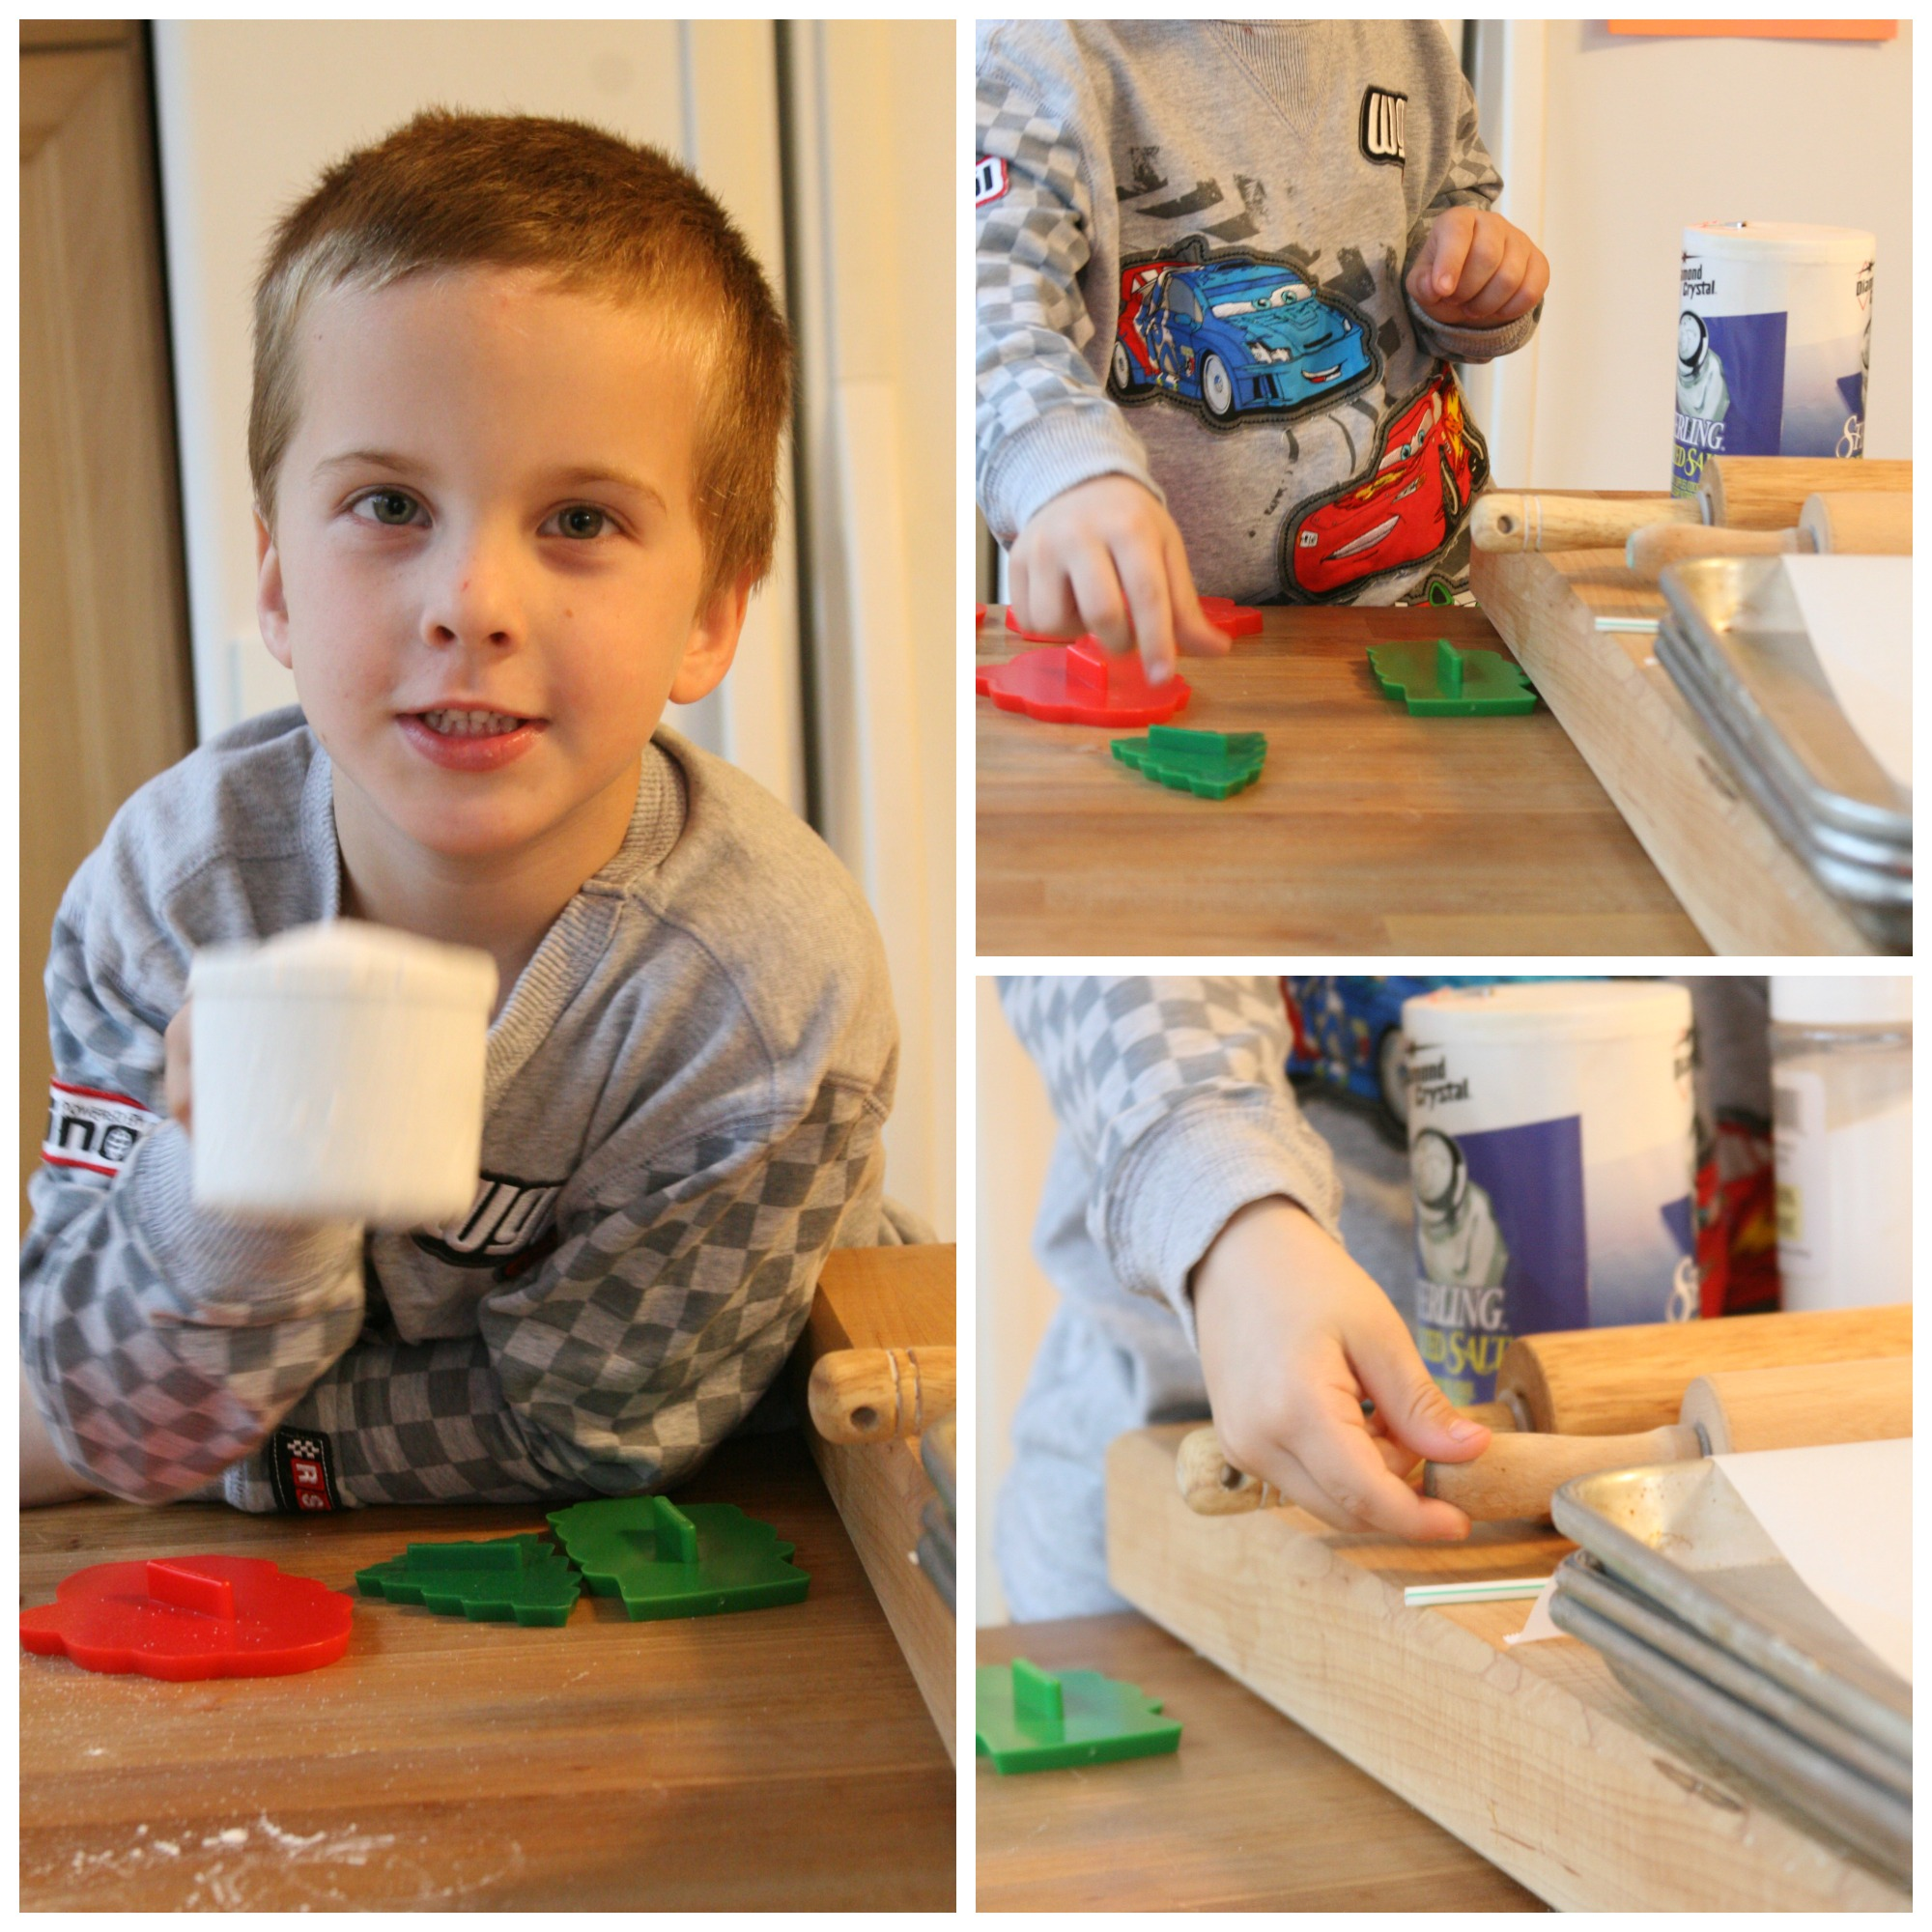 Step images with young boy making salt dough ornaments.